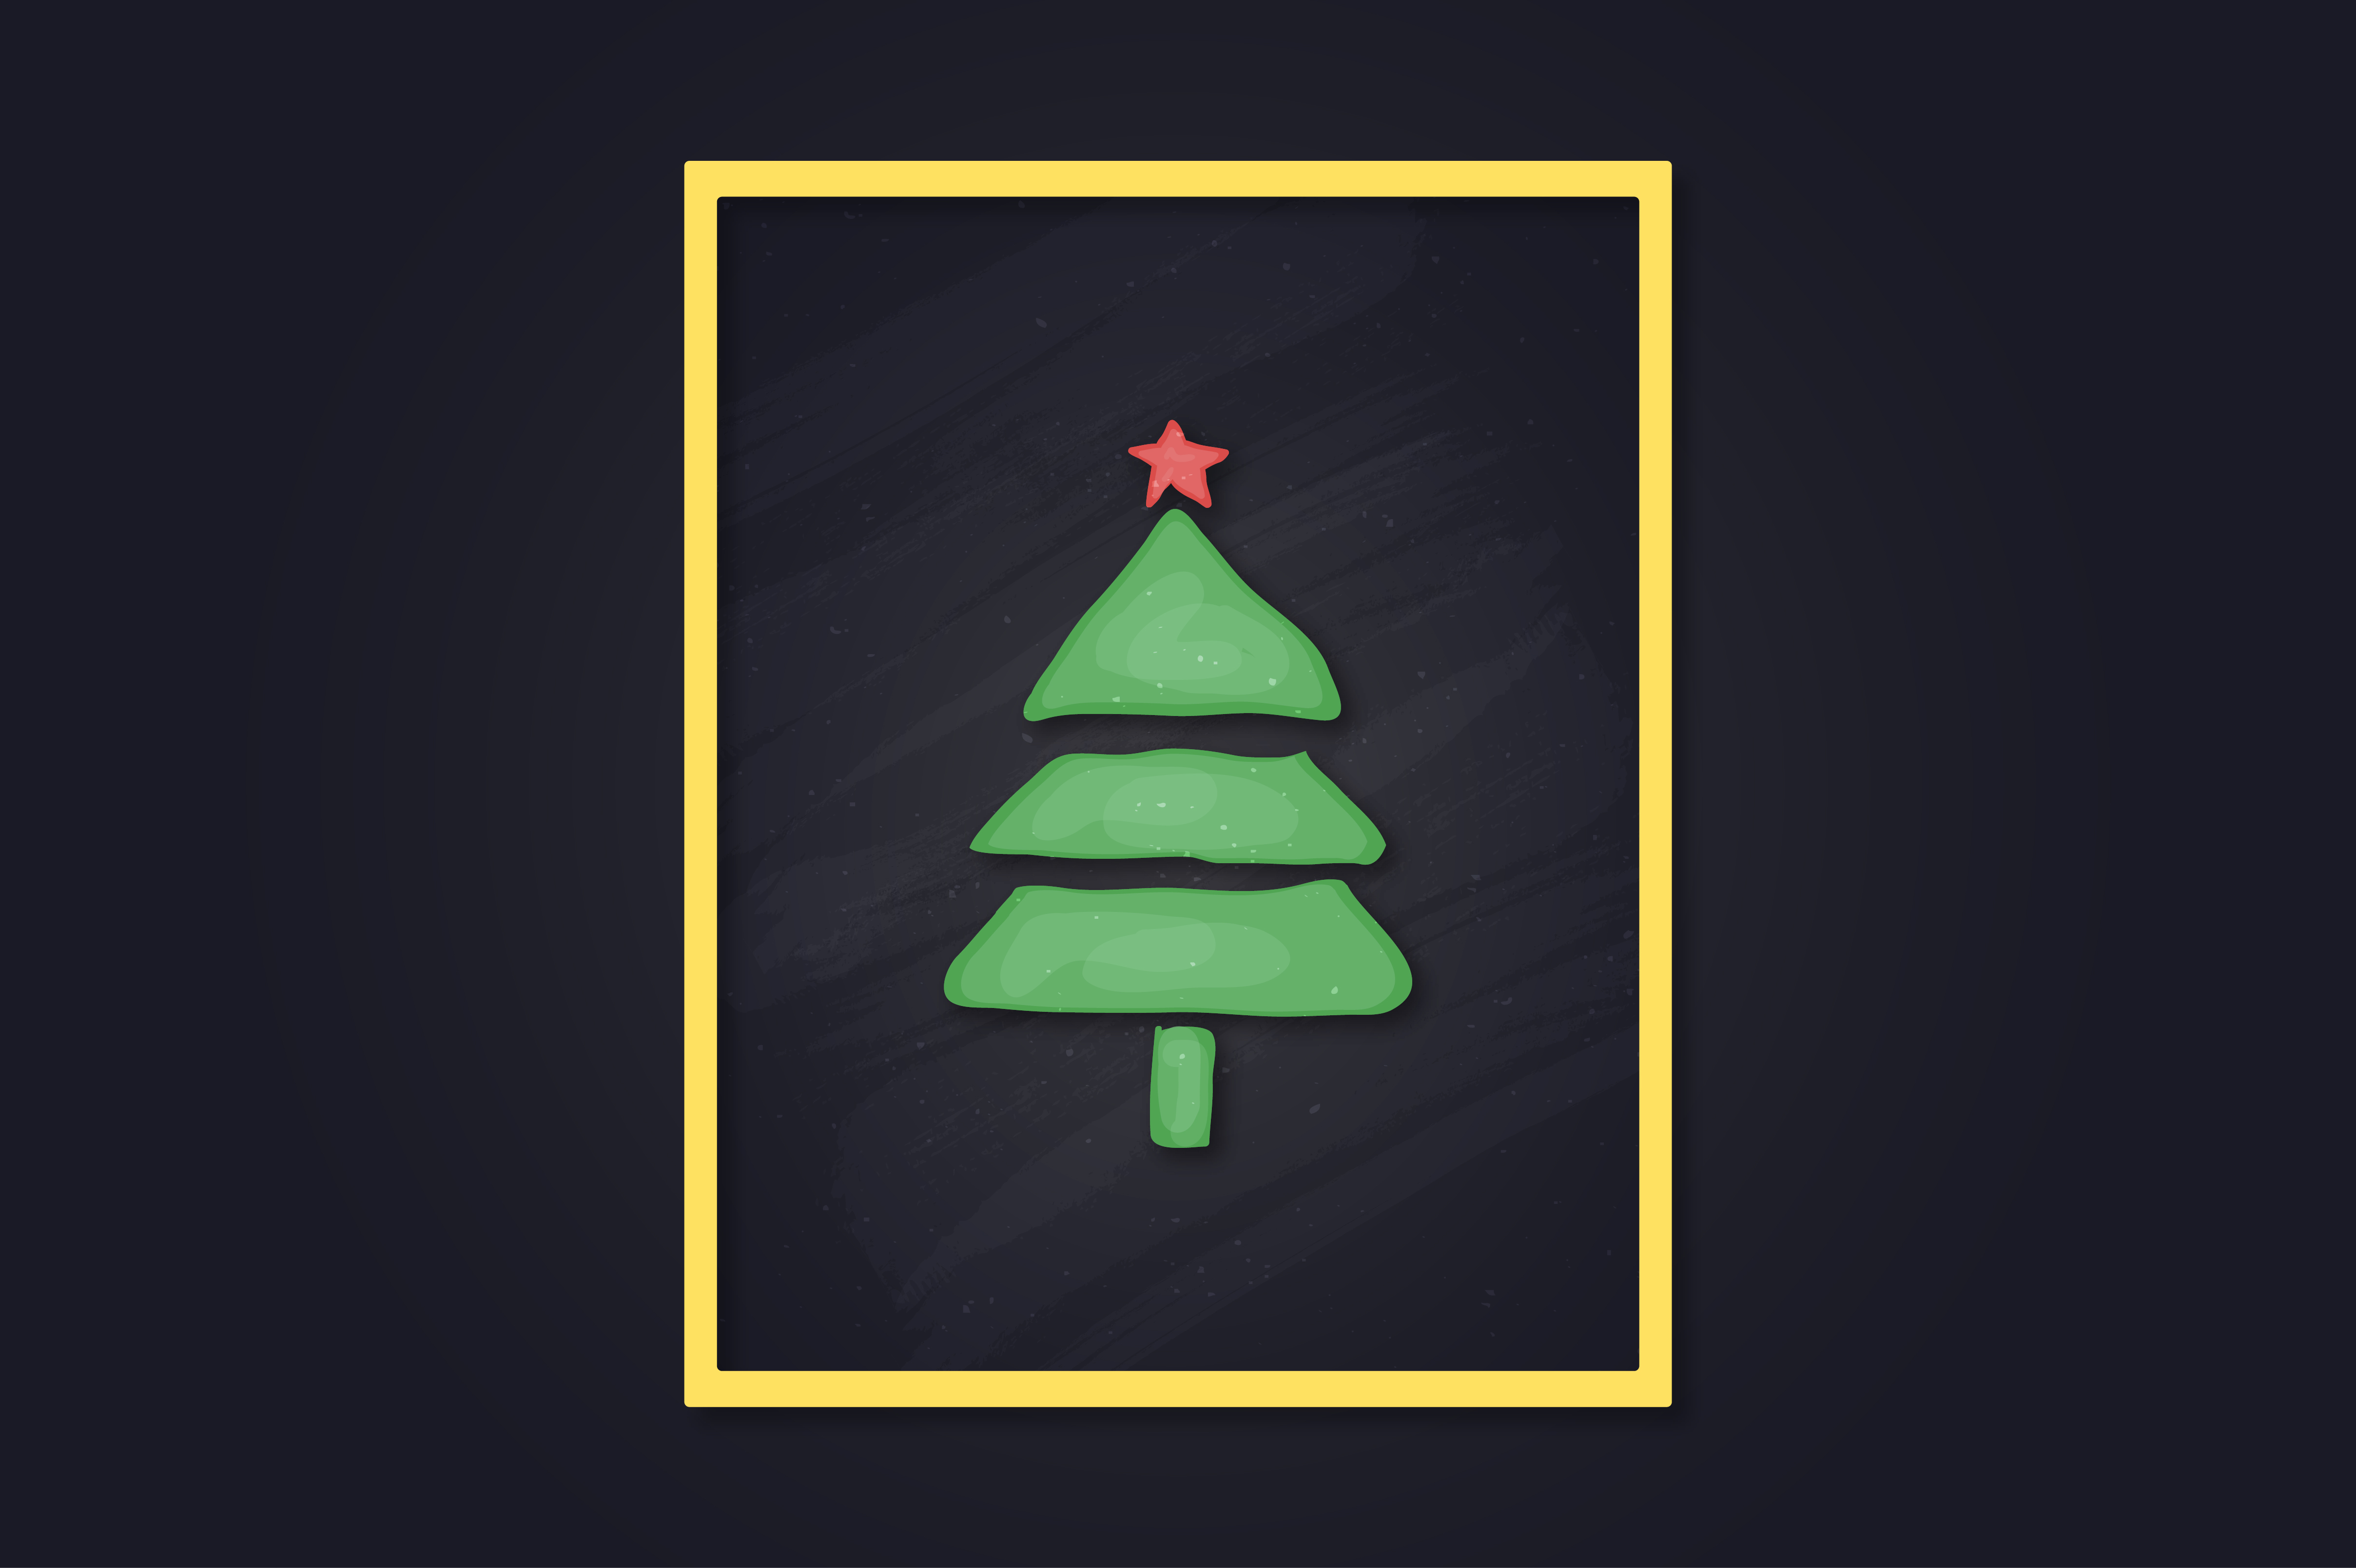 Download Free Christmas Tree Hand Drawn Art Graphic By Richline Design for Cricut Explore, Silhouette and other cutting machines.